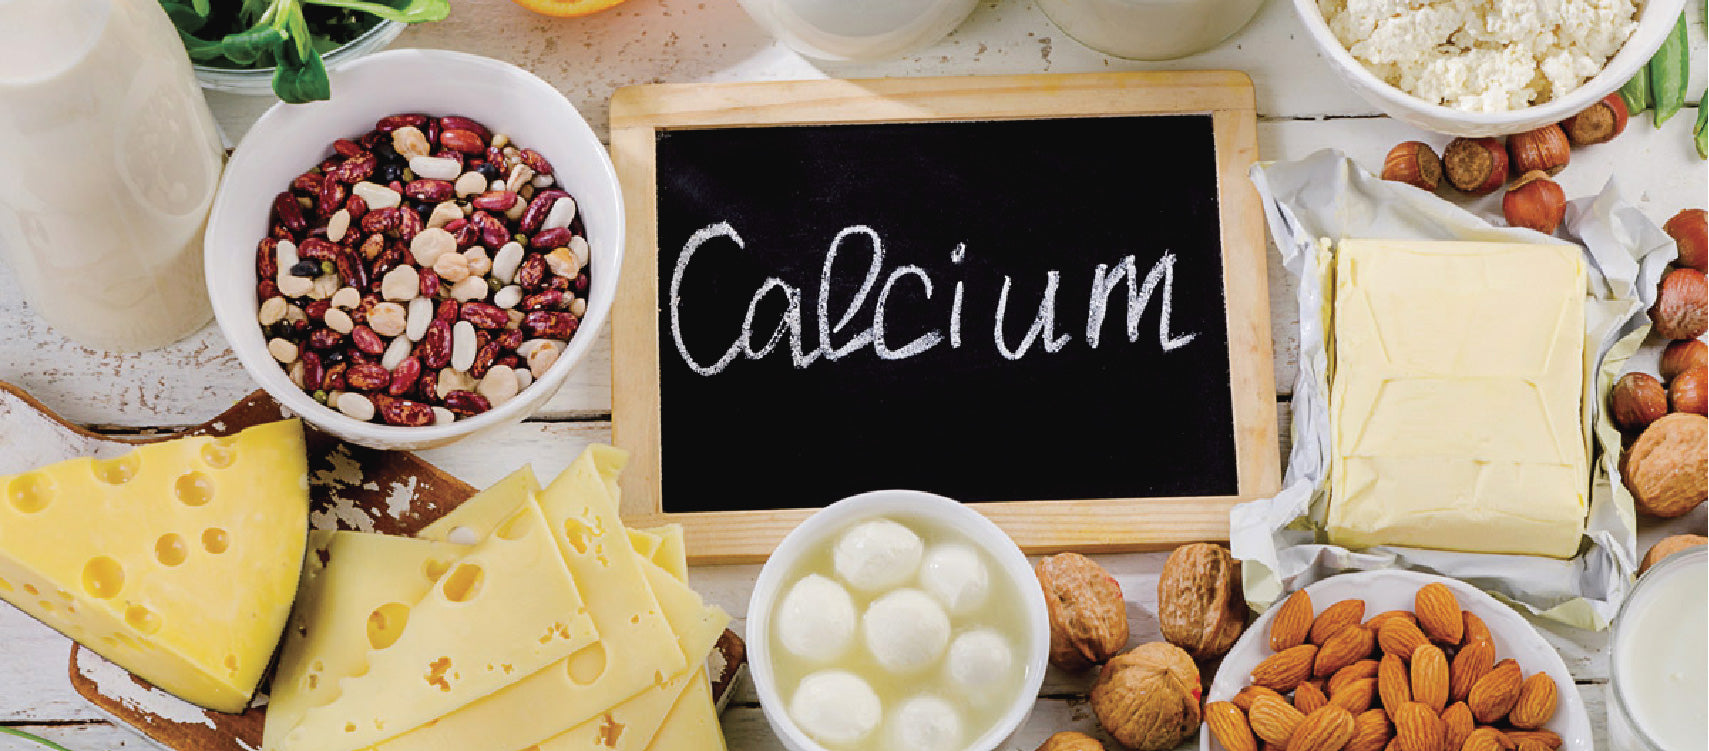 Calcium-rich foods like nuts and cheese